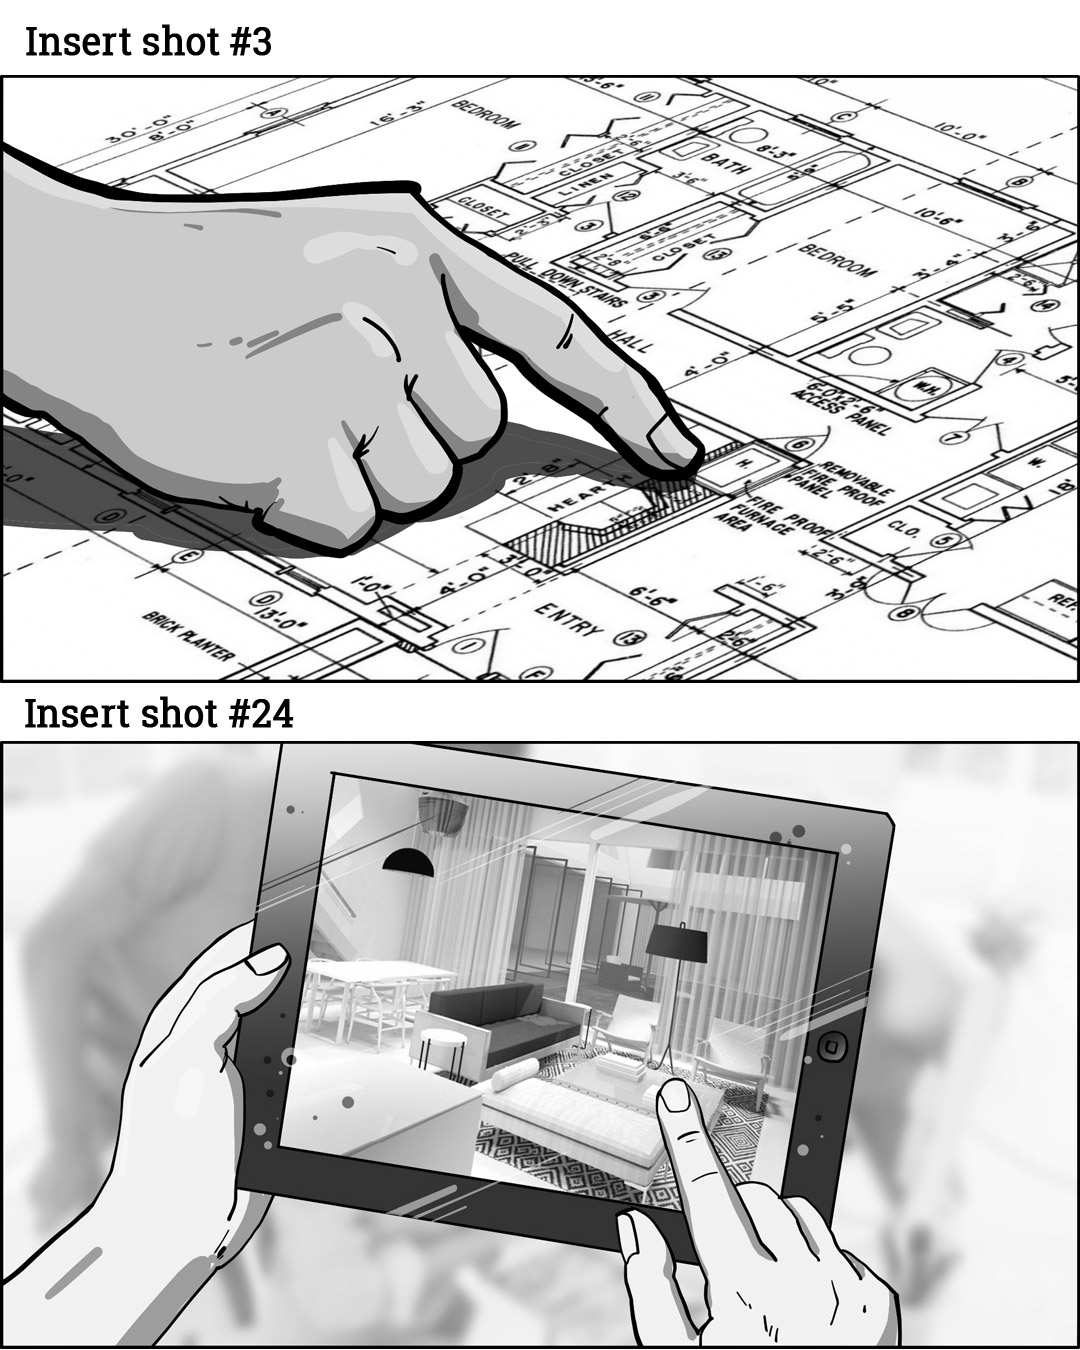 Storyboarding Insert Shots - #3 and #24